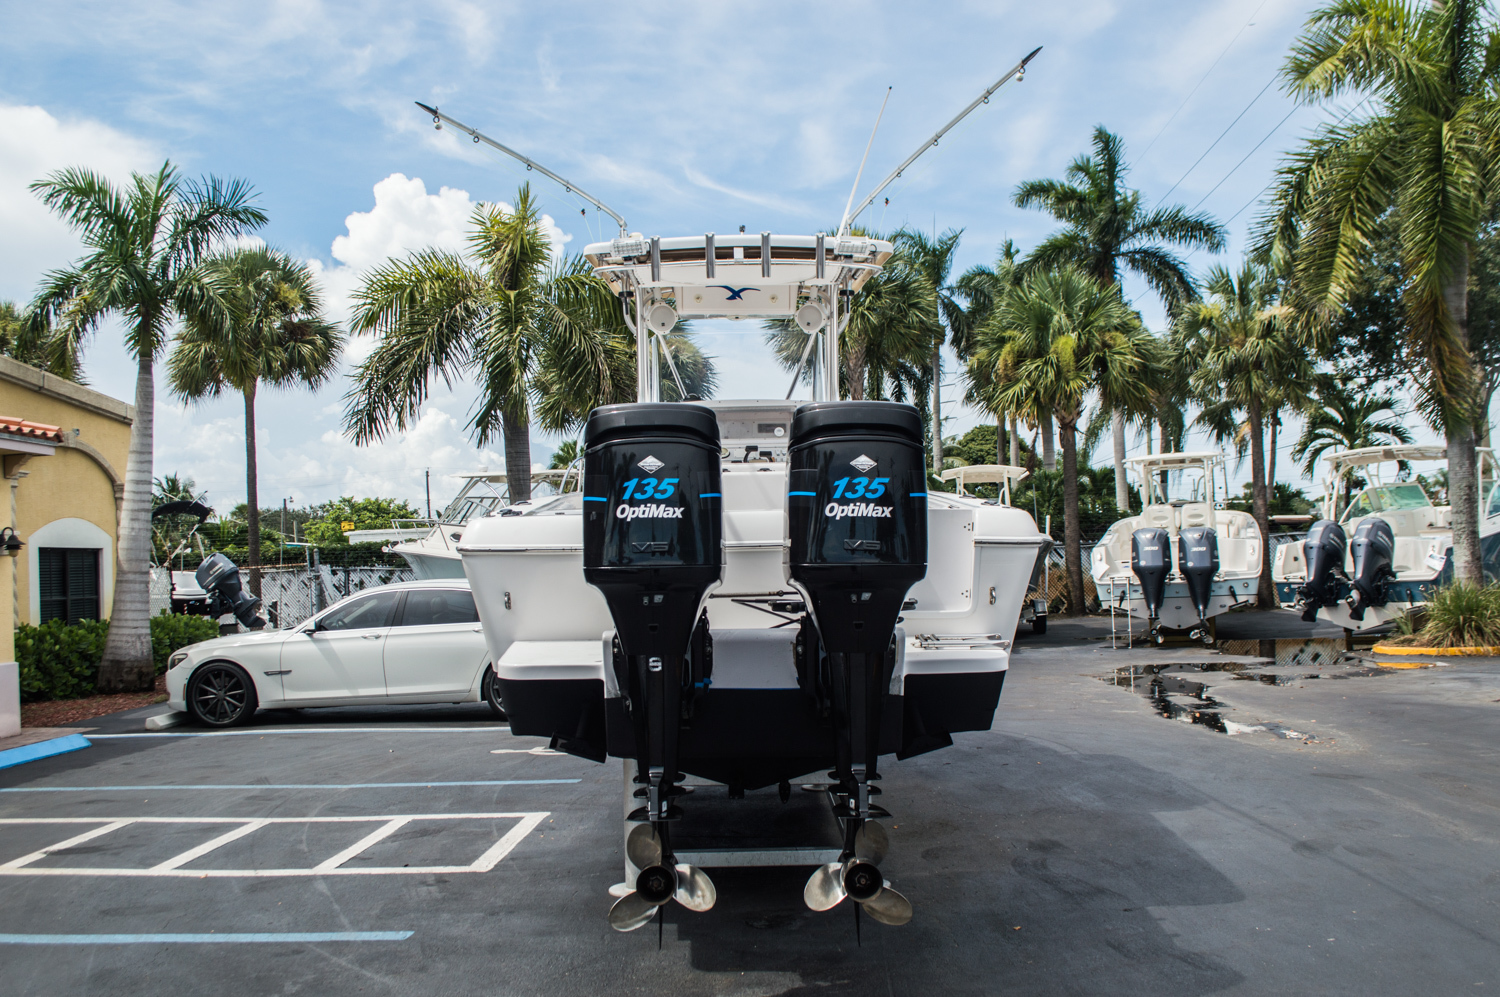 Thumbnail 6 for Used 2004 Pro-Line 25 Sport boat for sale in West Palm Beach, FL